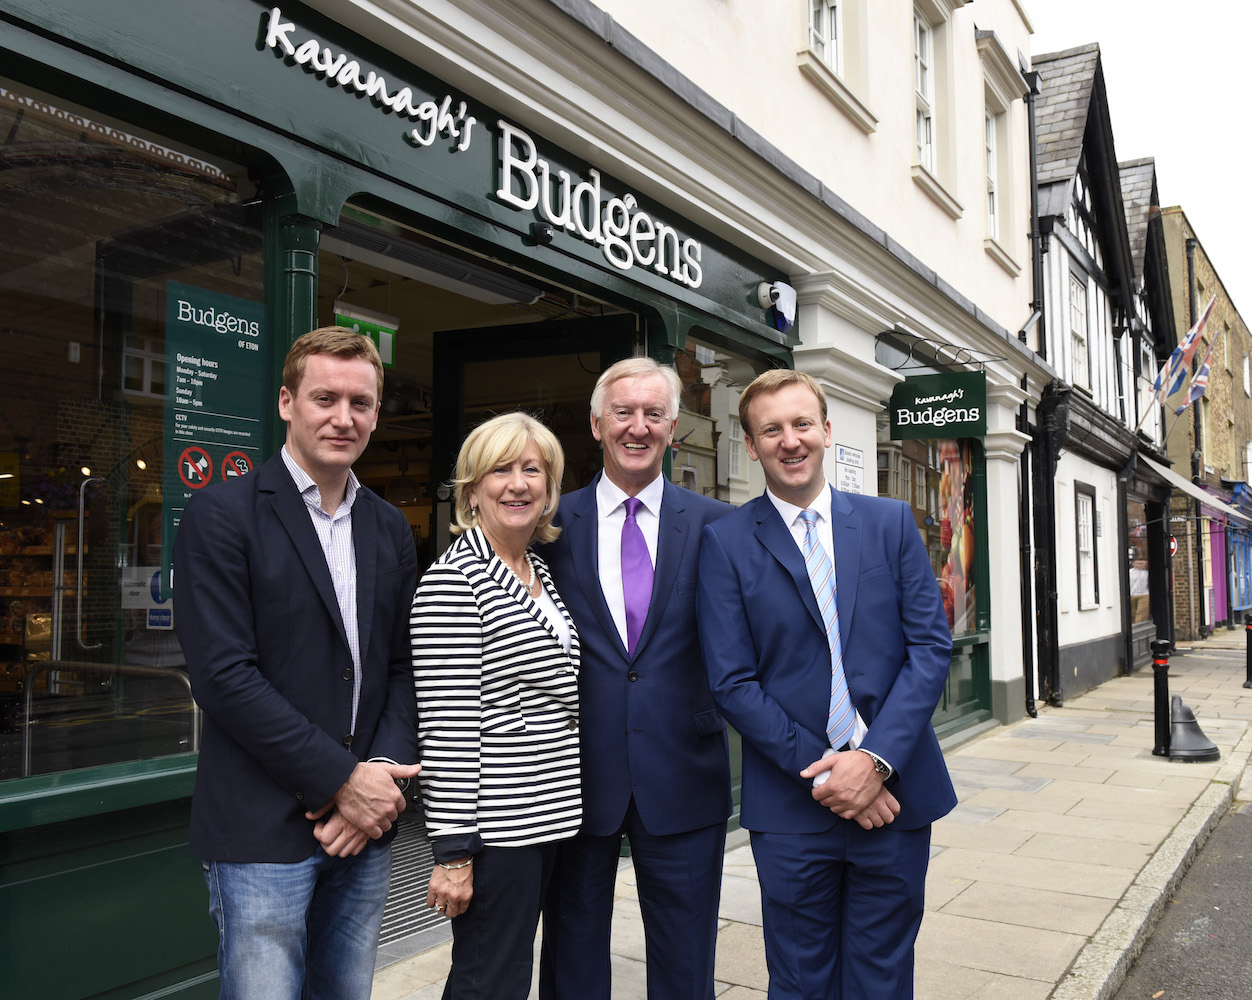 Kavanagh family on opening day of Budgens Eton